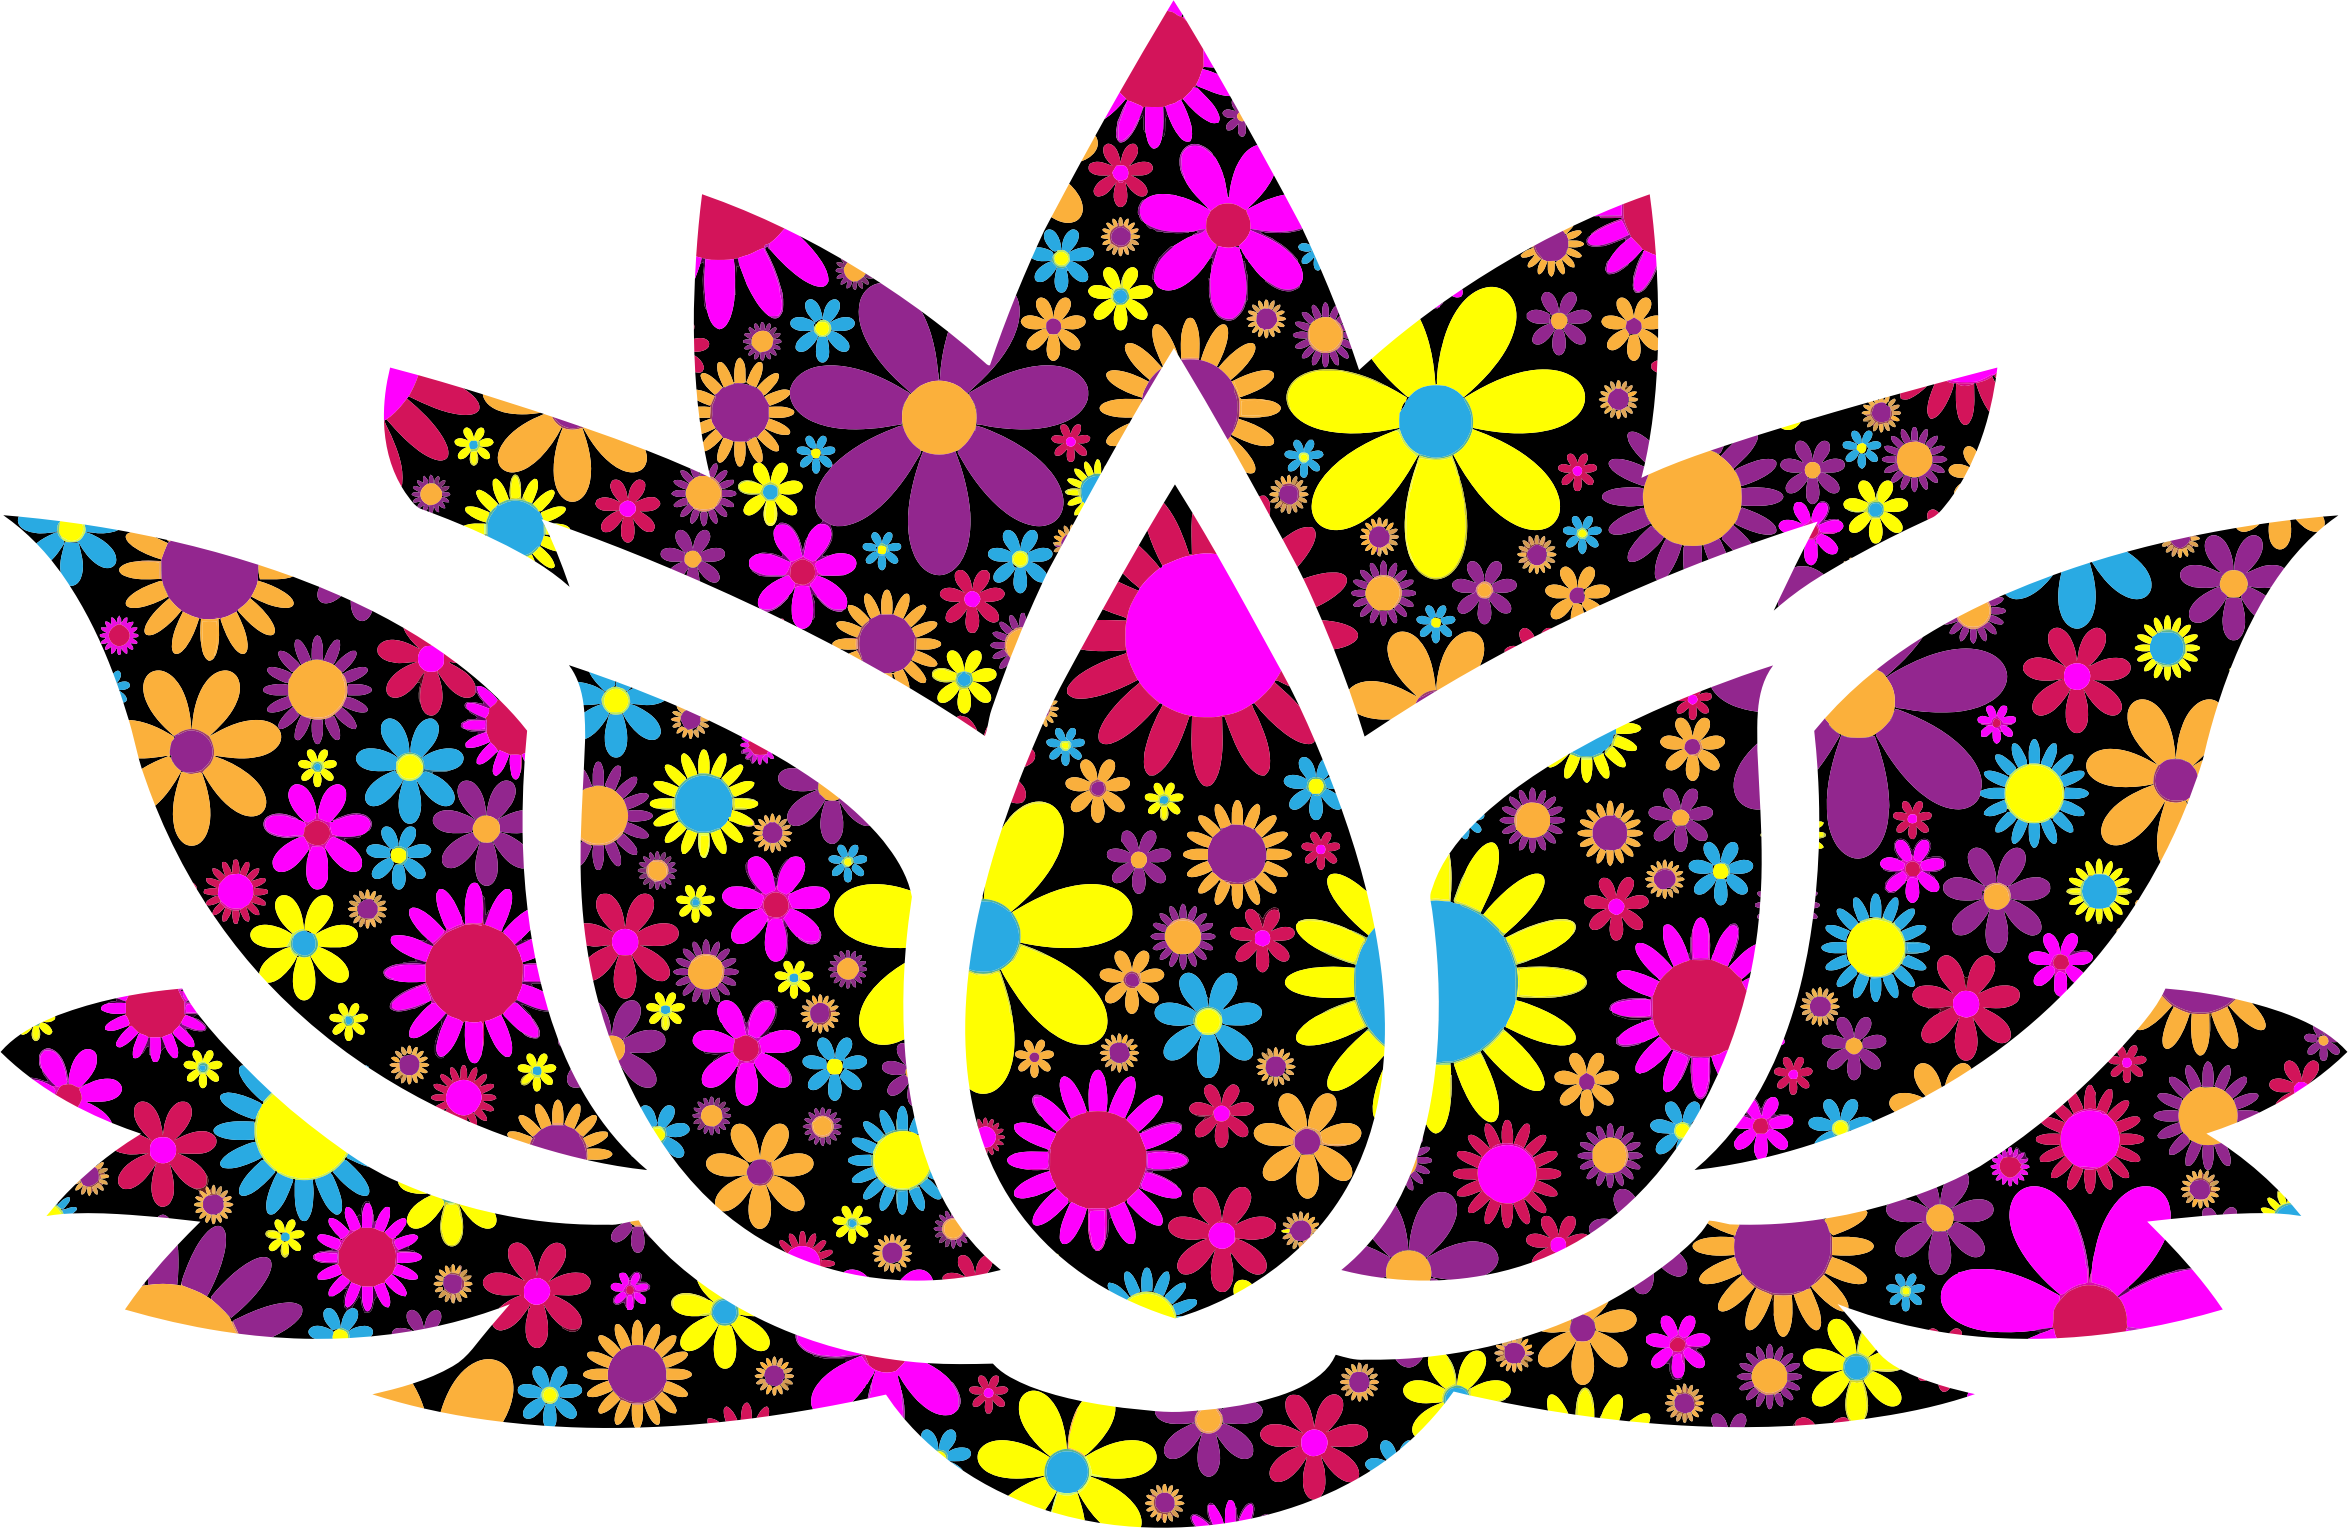 2348x1528 Floral Lotus Flower Silhouette 8 Icons Png